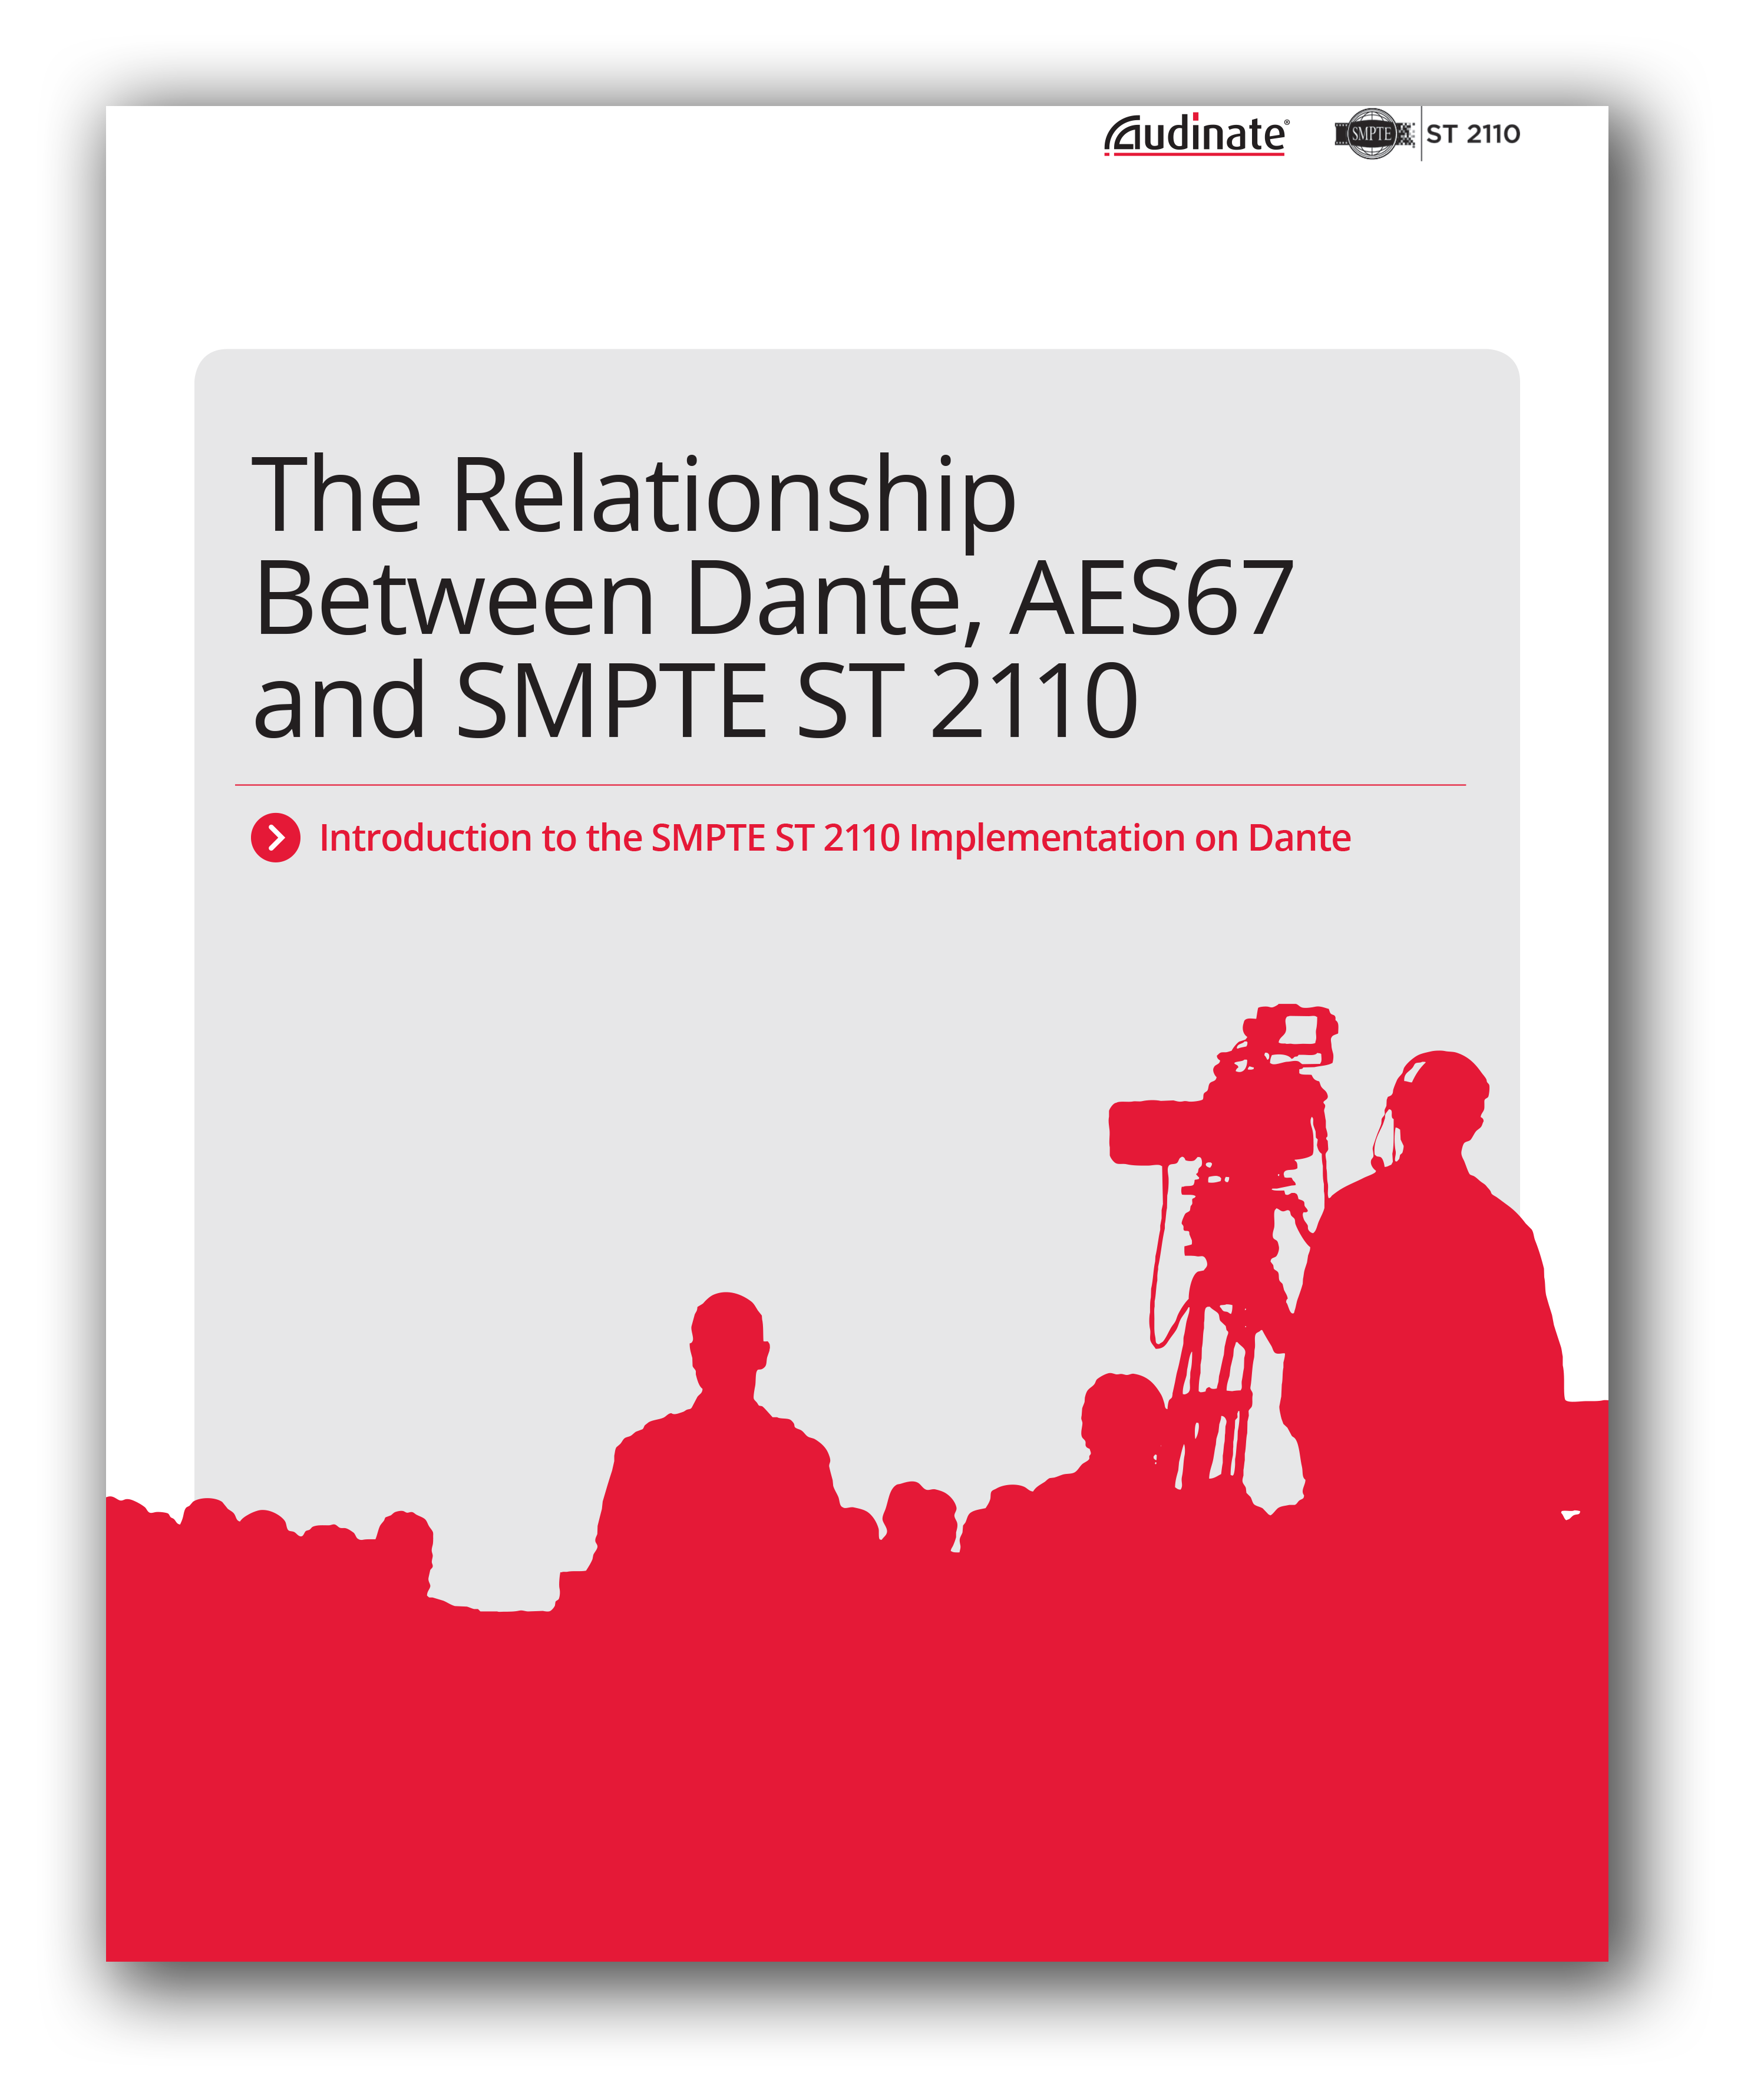 relationship-between-dante-aes67-smpte-st-2110-wp-sm-fb